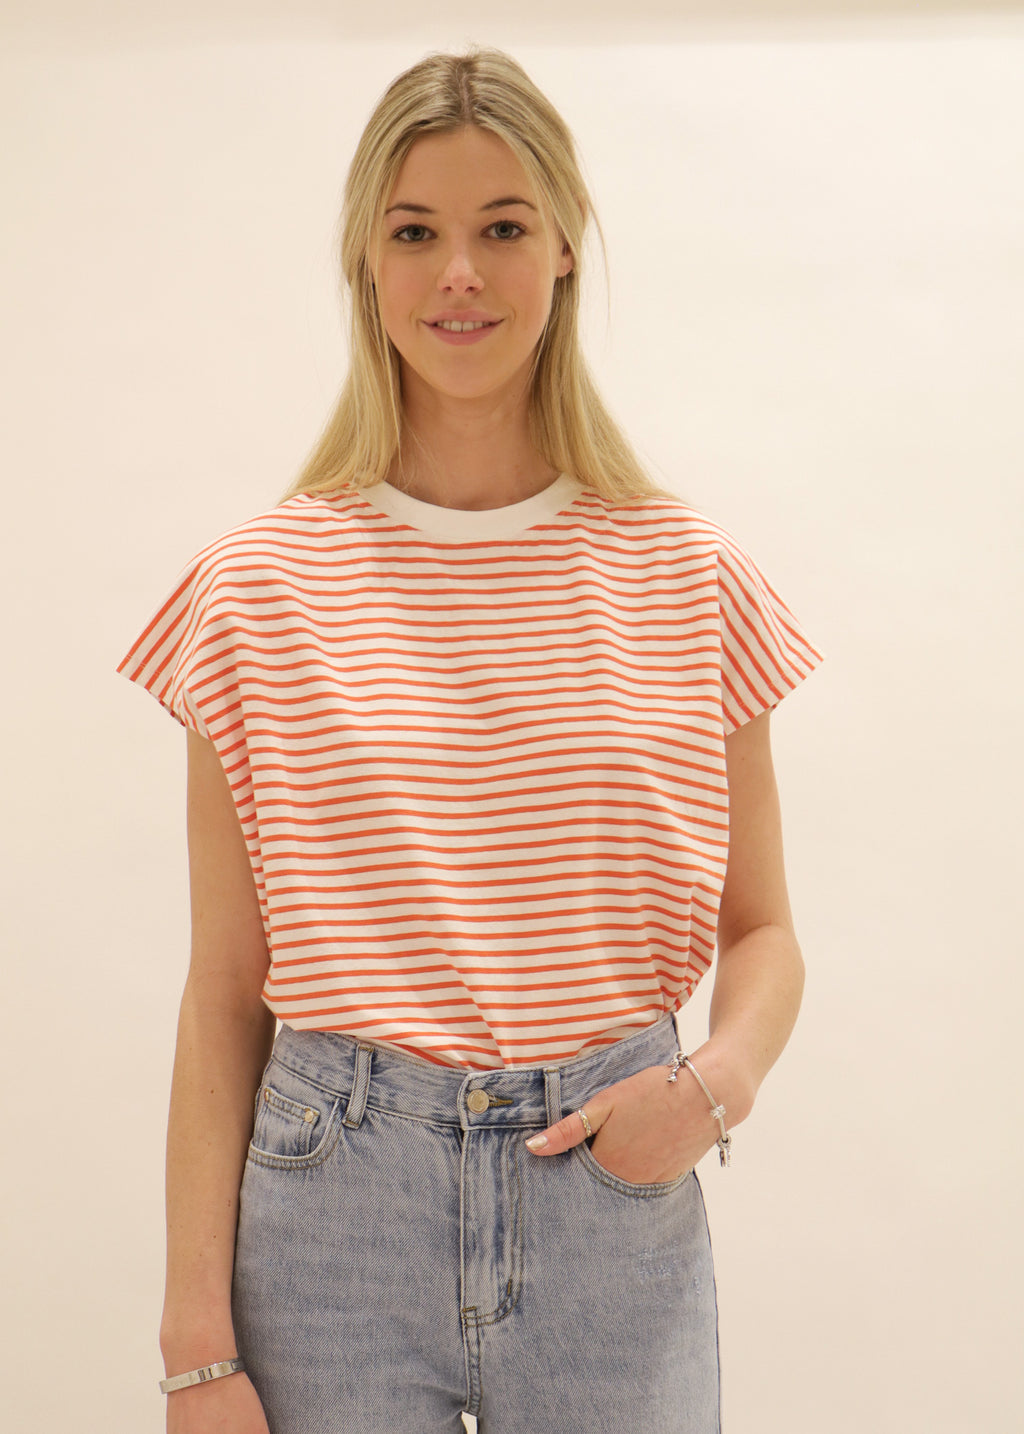 Weekday Striped Tee in white and orange stripe